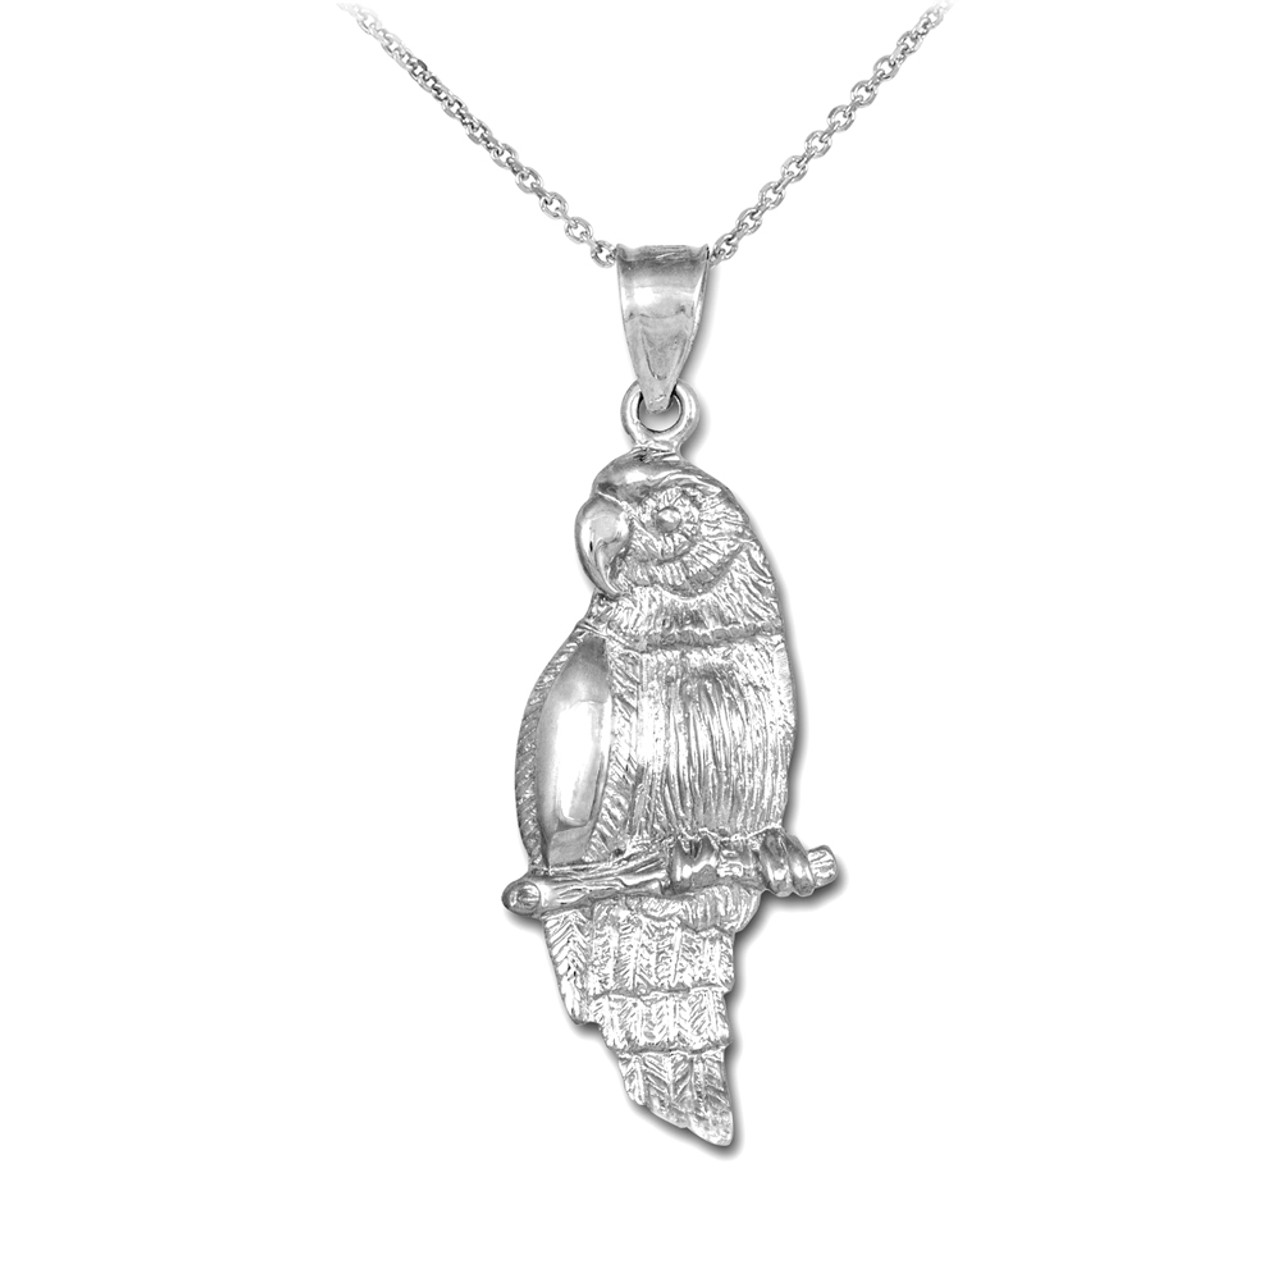 Sterling Silver Polished /& Textured Perched Owl Pendant